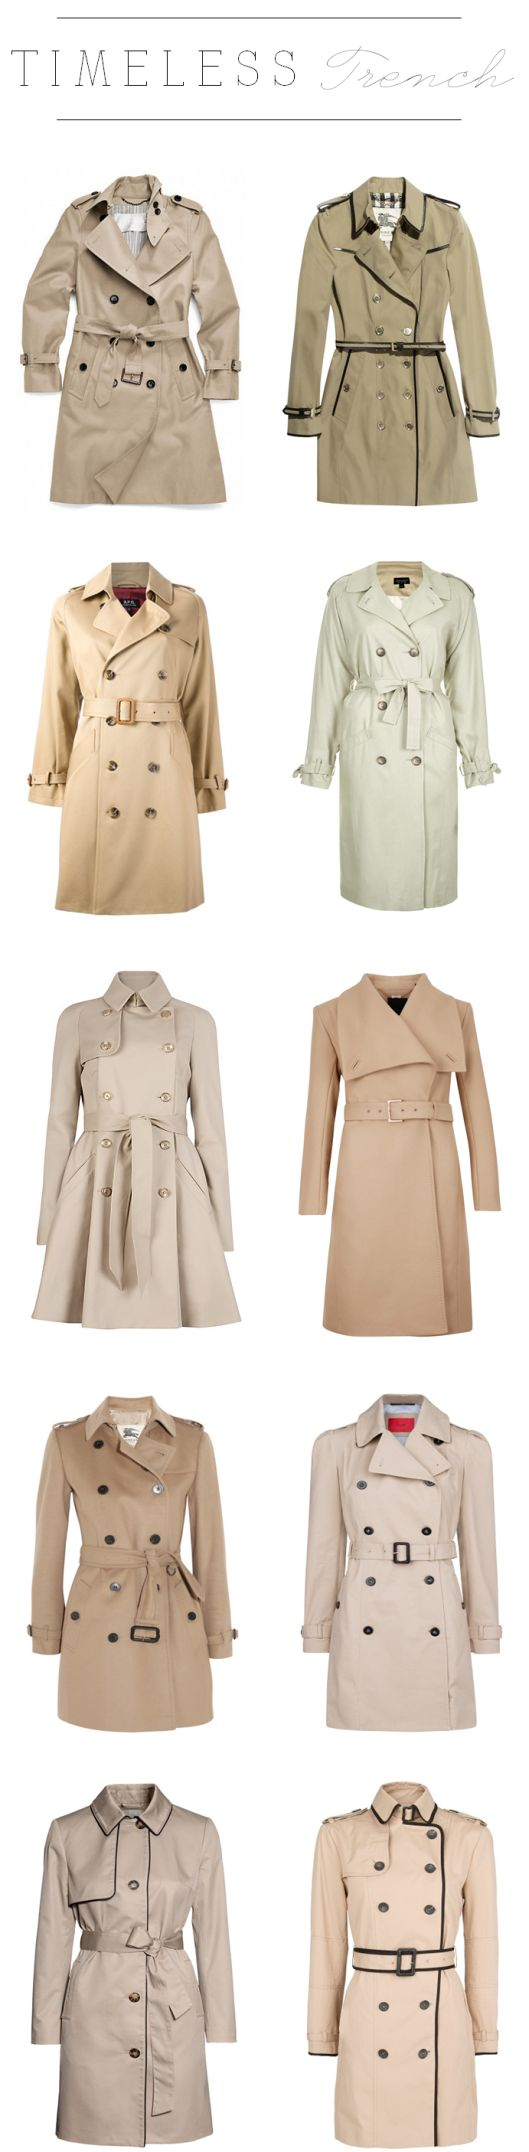 A trench coat is a great piece to own! It's the perfect fit for fall weather.